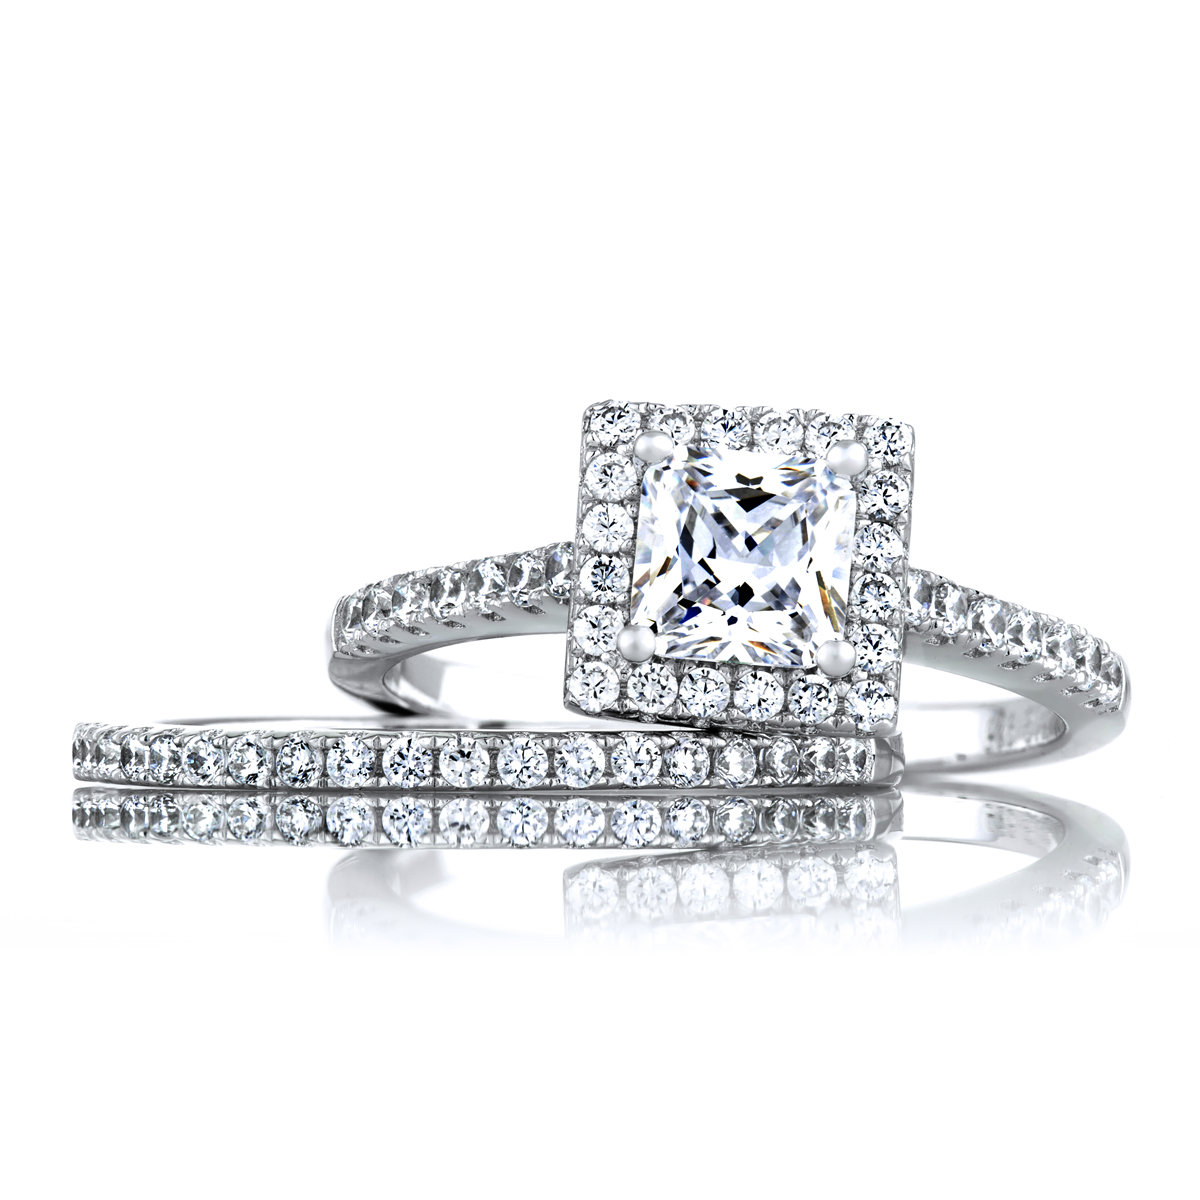 halo cz wedding ring set roll off image to close zoom window - Halo Wedding Ring Set